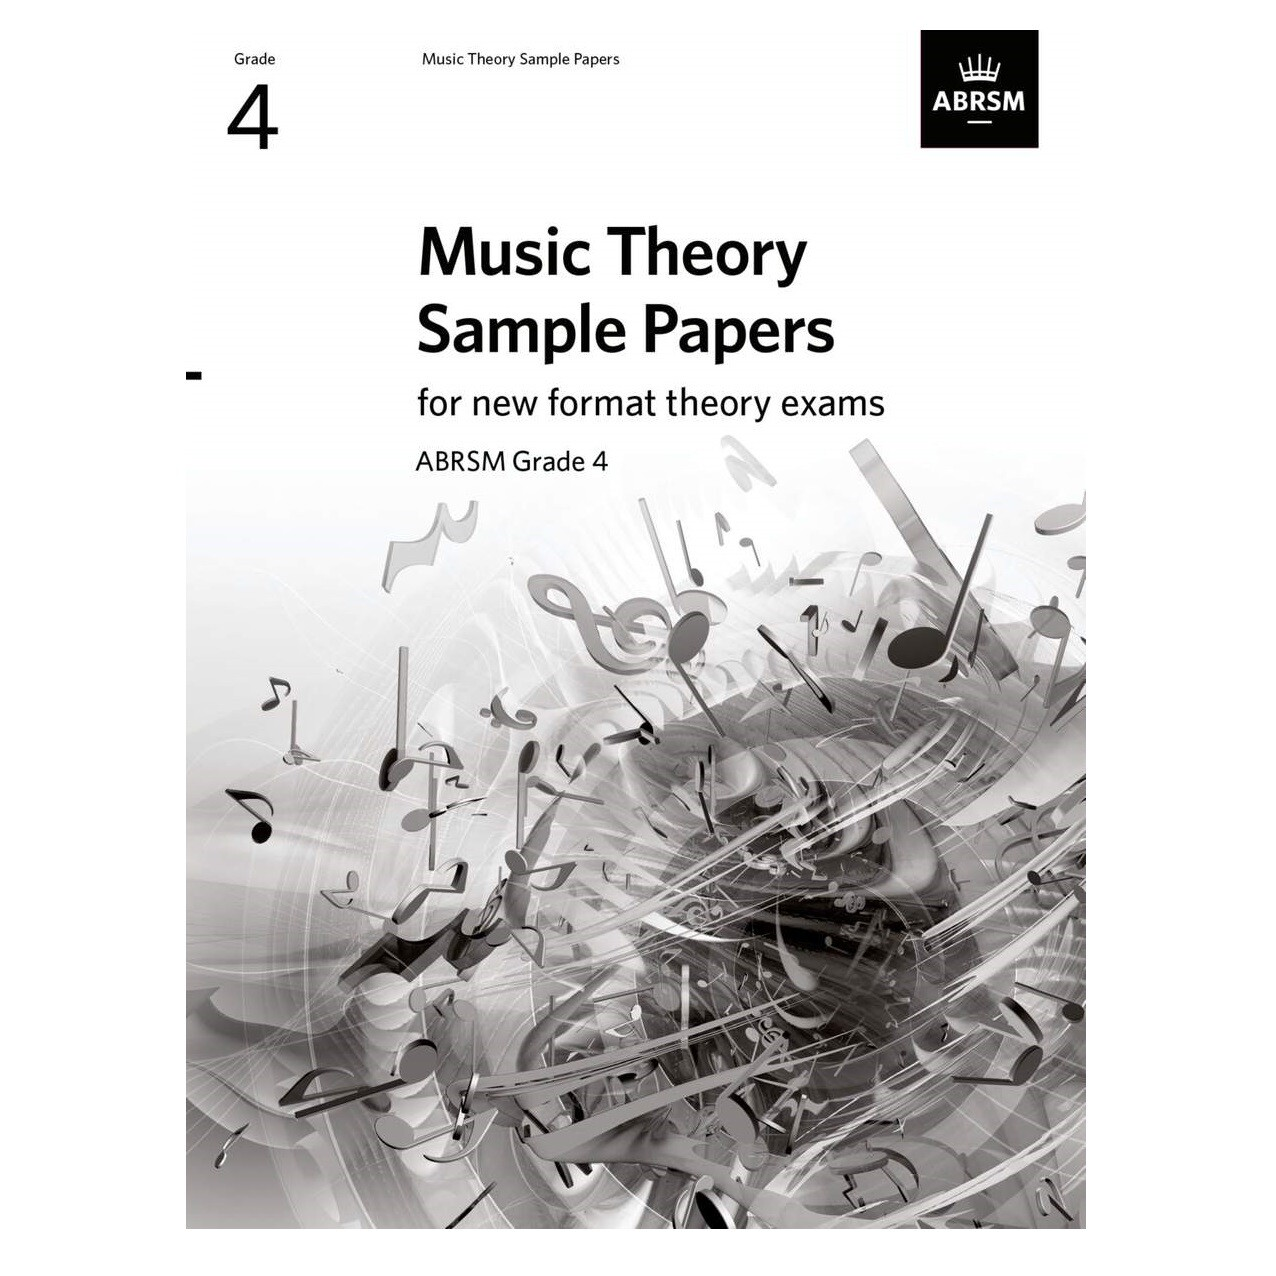 ABRSM Music Theory Sample Papers (new 2020 format) - Grade 4